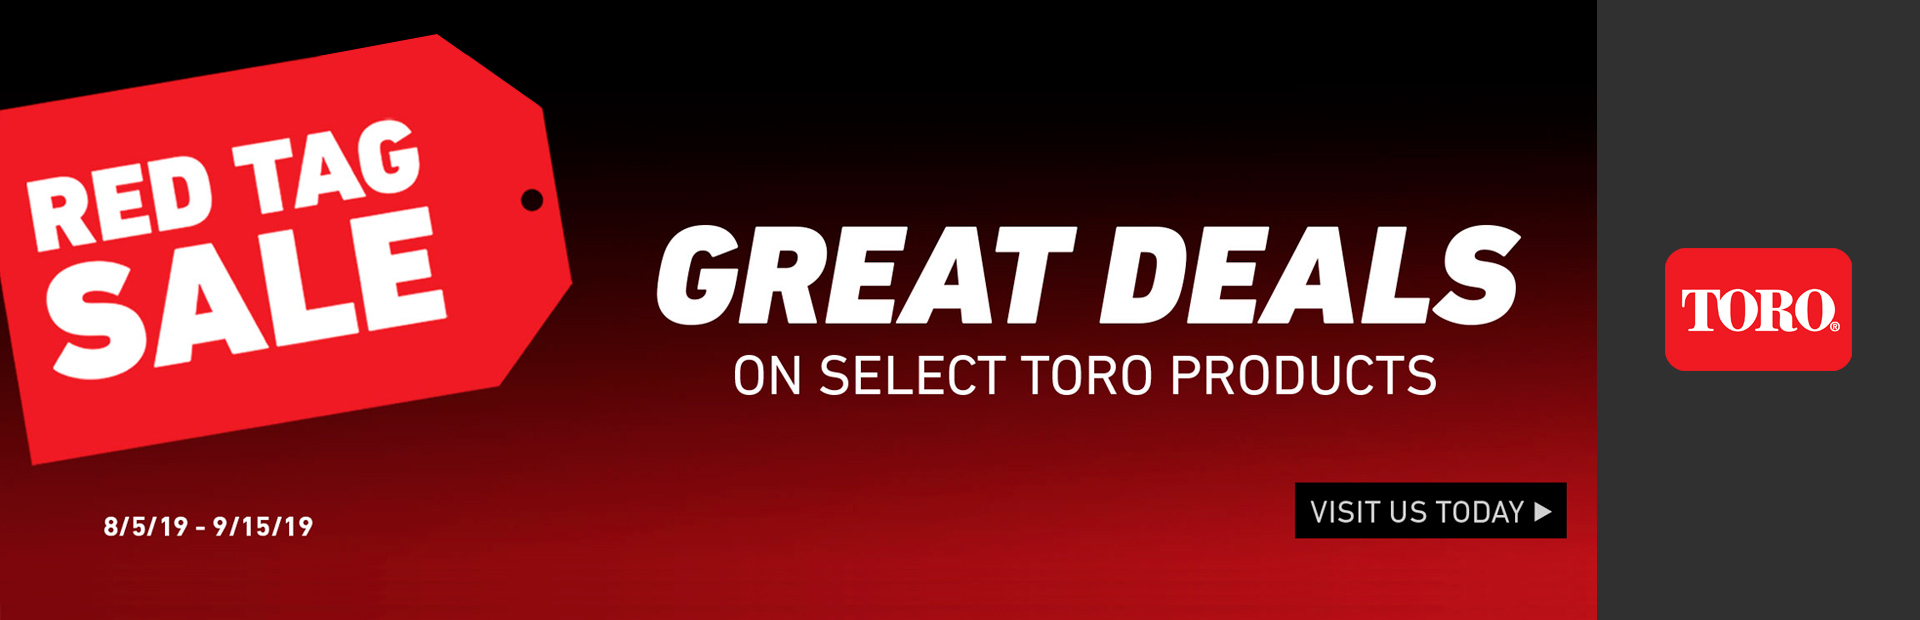 Toro - Red Tag Sales Event Blades Power Equipment Red Deer